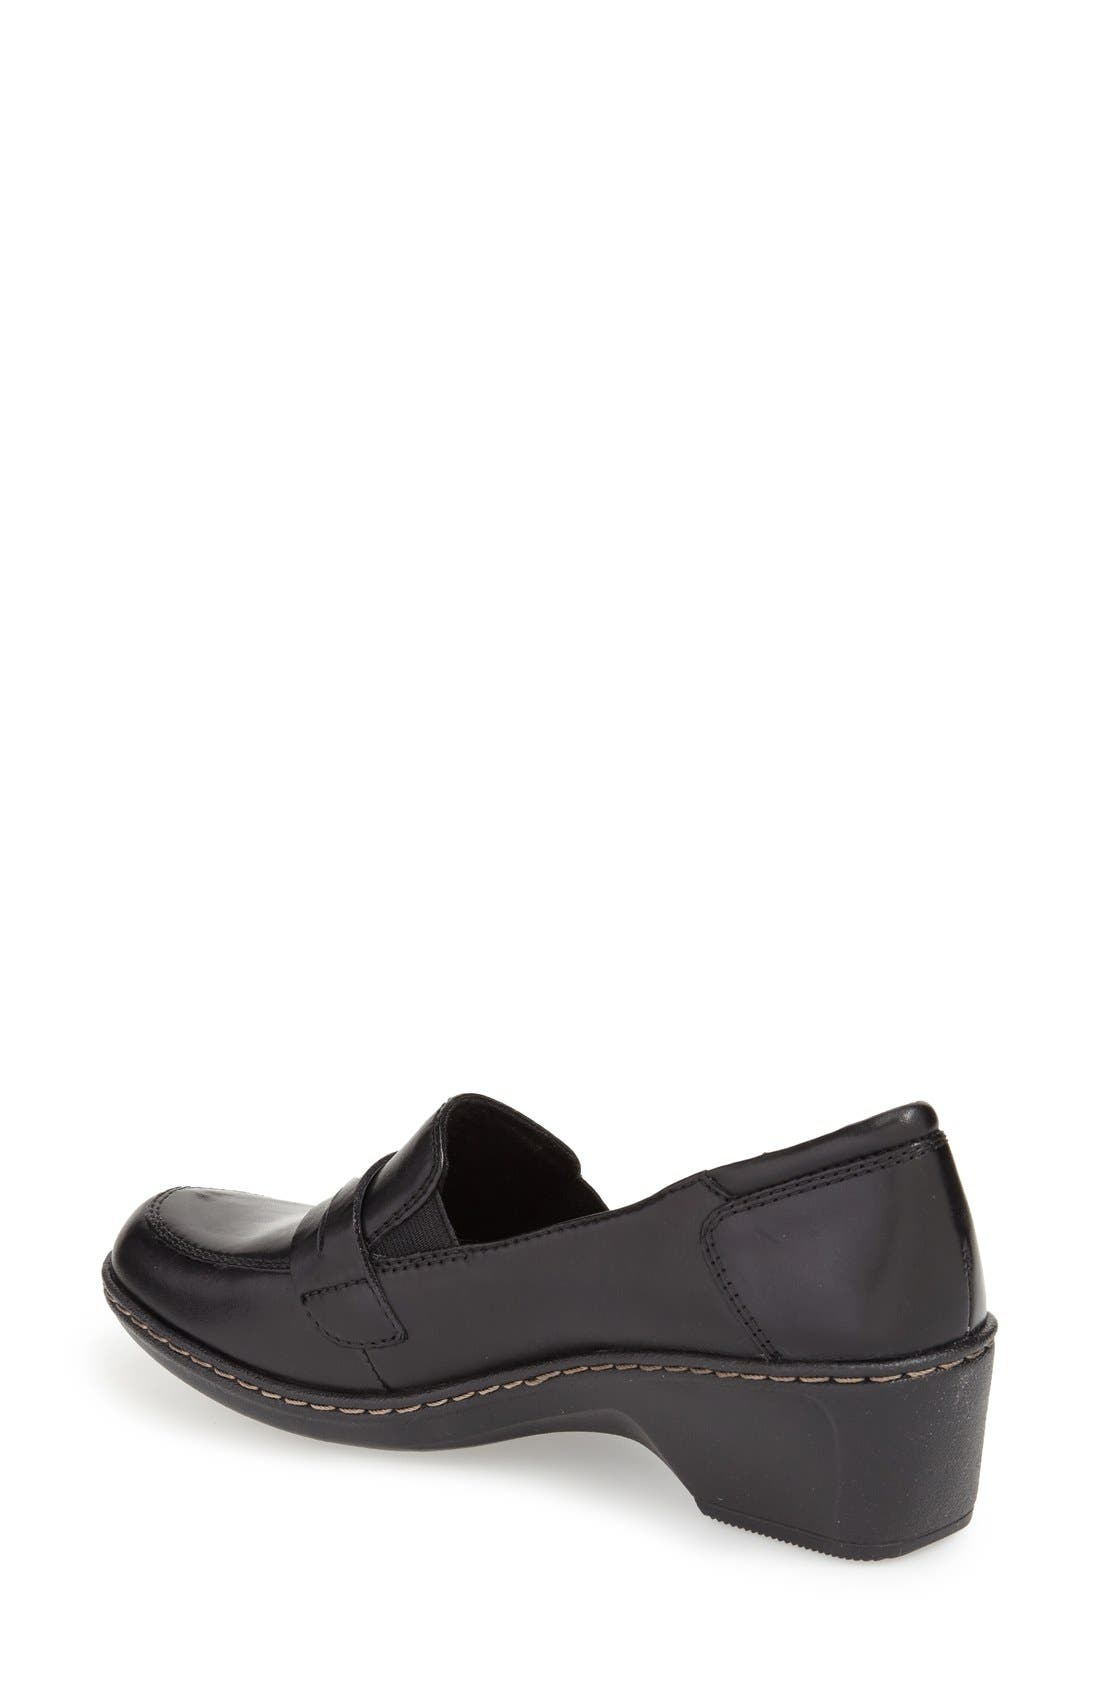 Cobb Hill 'Deidre' Loafer,                             Alternate thumbnail 4, color,                             BLACK LEATHER